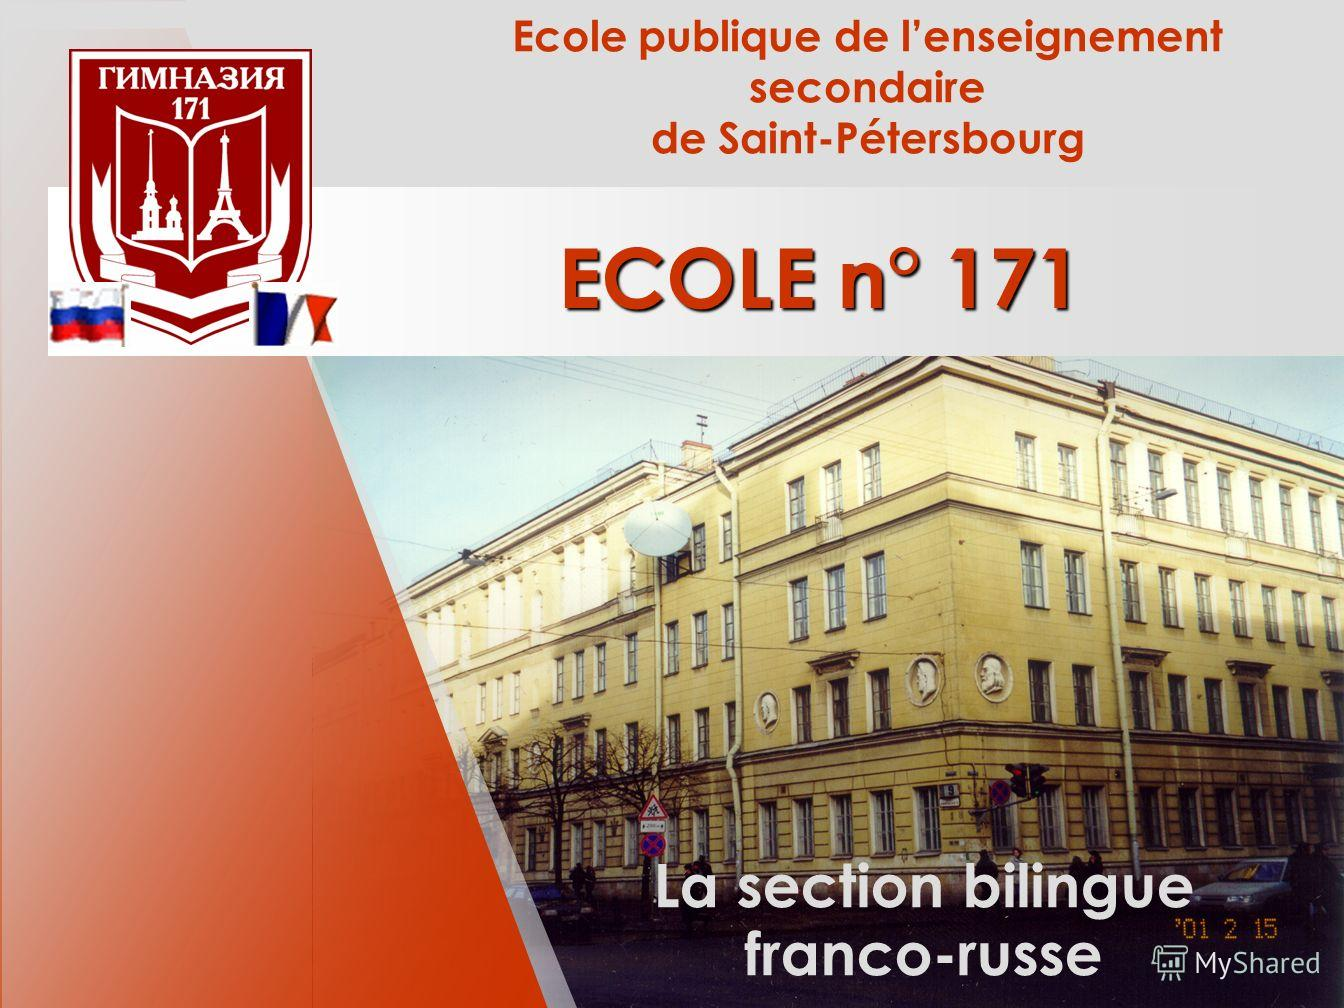 Ecole publique de lenseignement secondaire de Saint-Pétersbourg ECOLE n° 171 La section bilingue franco-russe